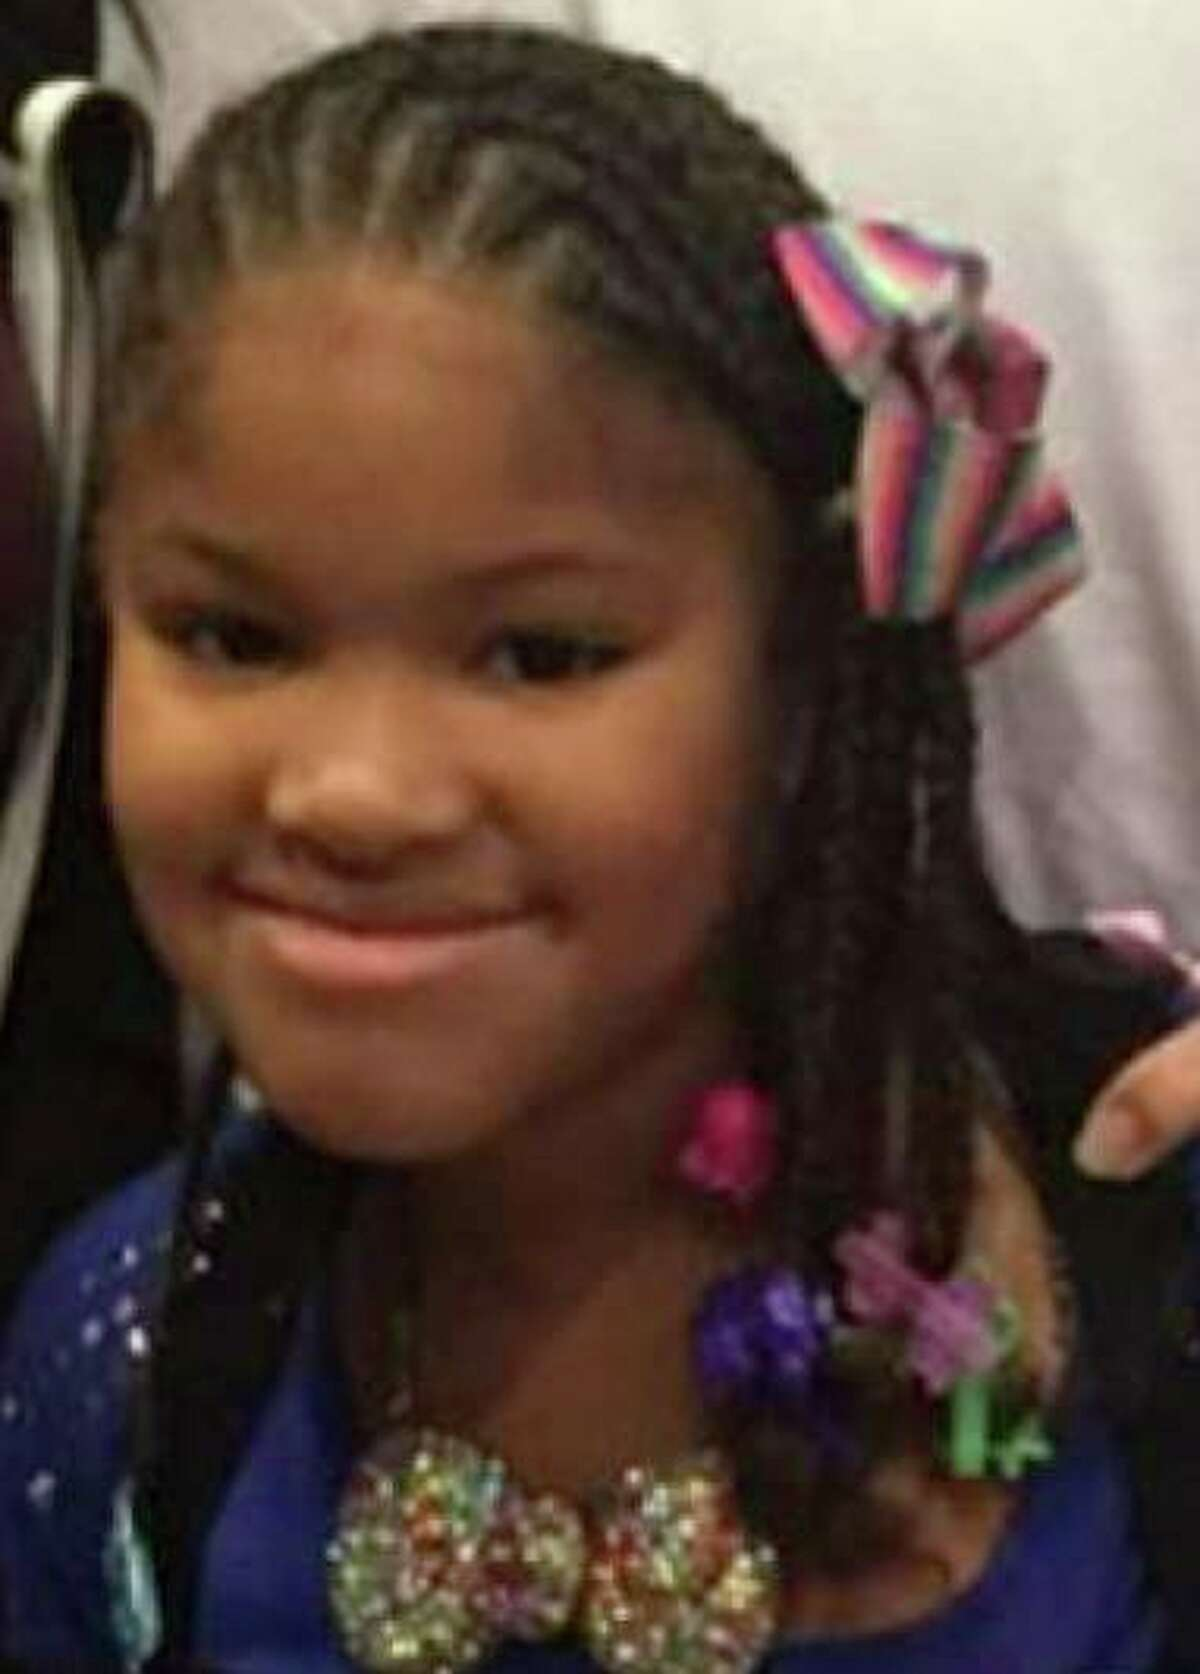 Jazmine Barnes, 7, was shot and killed in a drive-by shooting. >>See photos from Barnes' funeral in the images that follow...